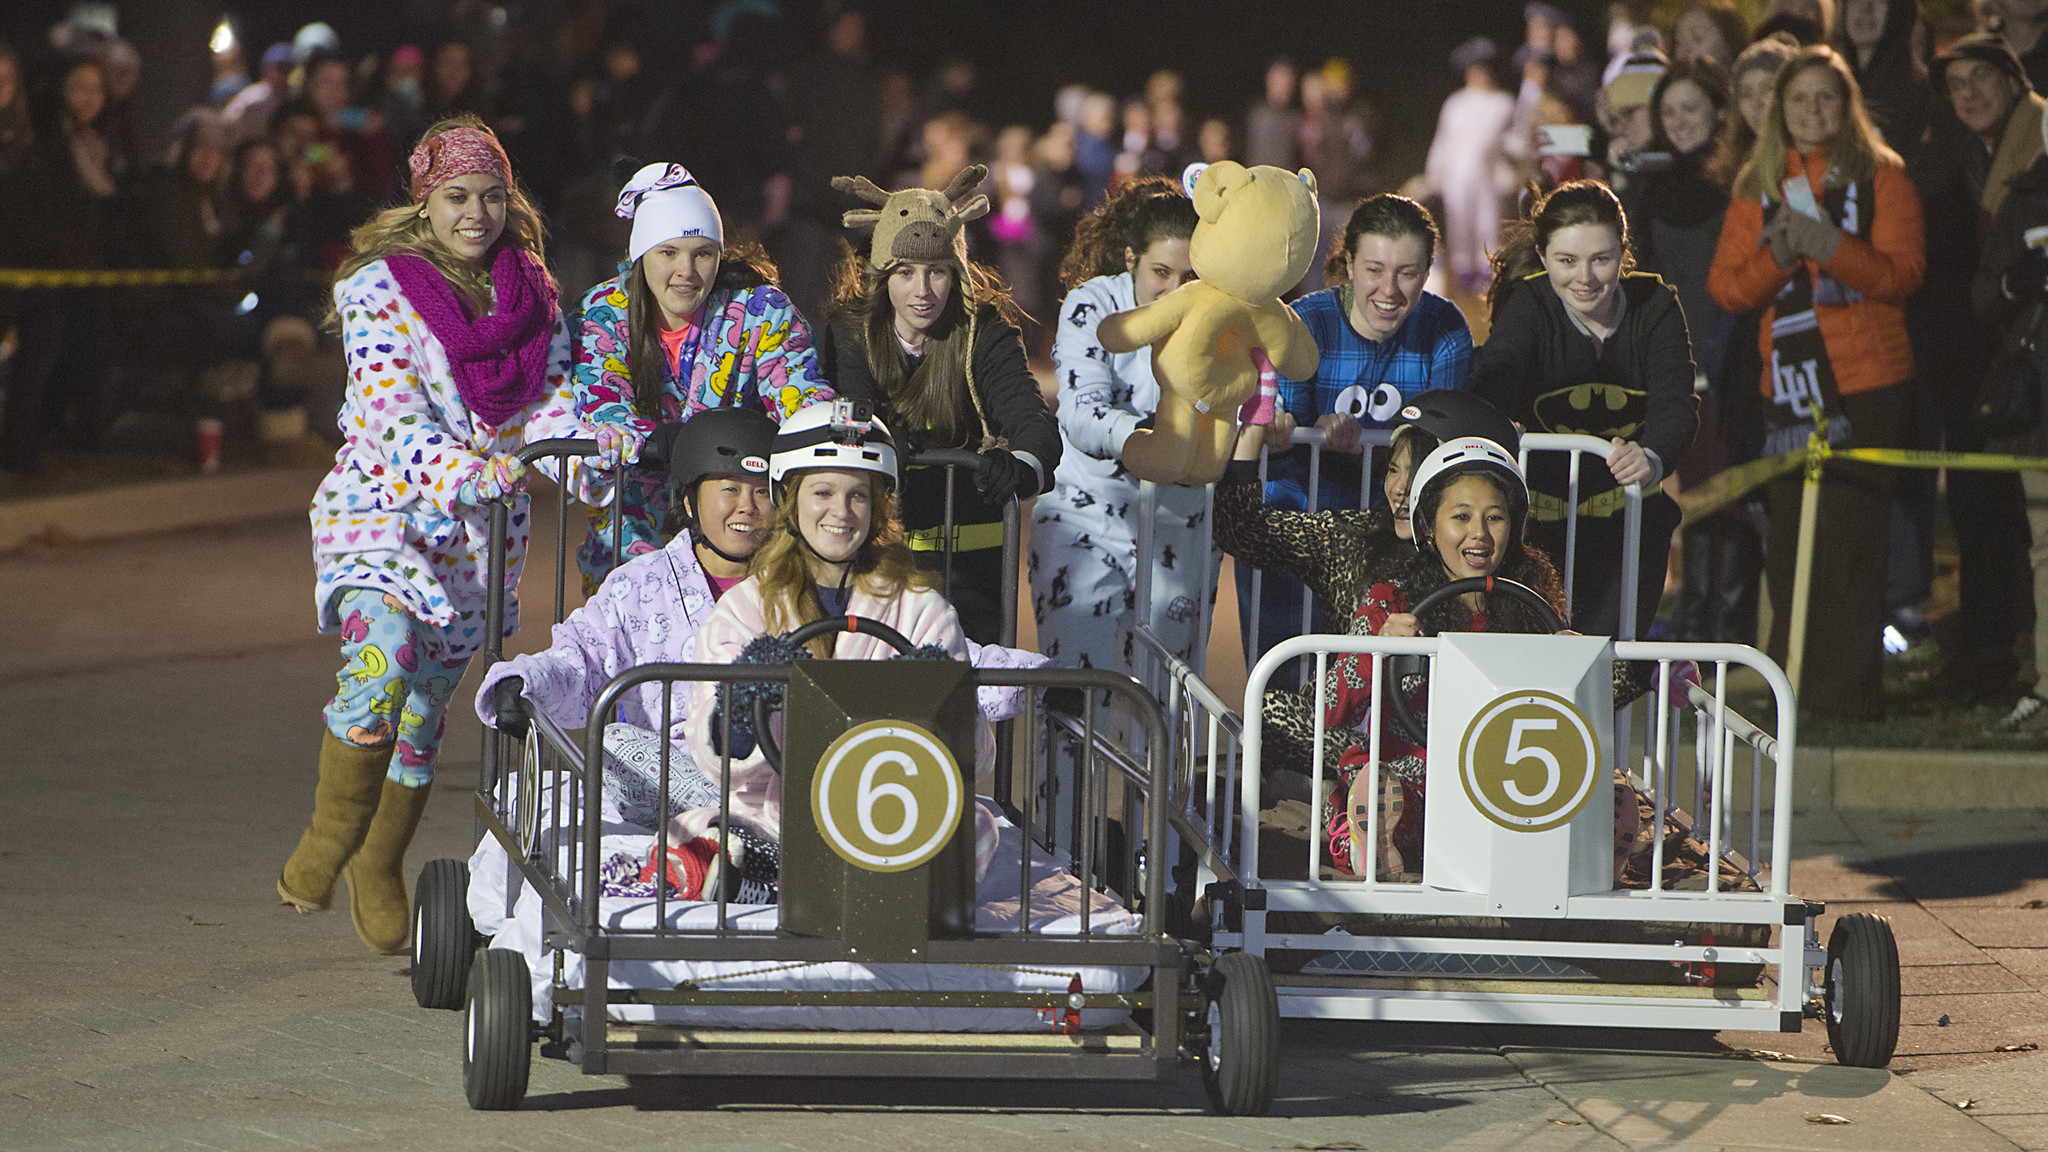 Pictures Lehigh University Students Hold Bed Races As